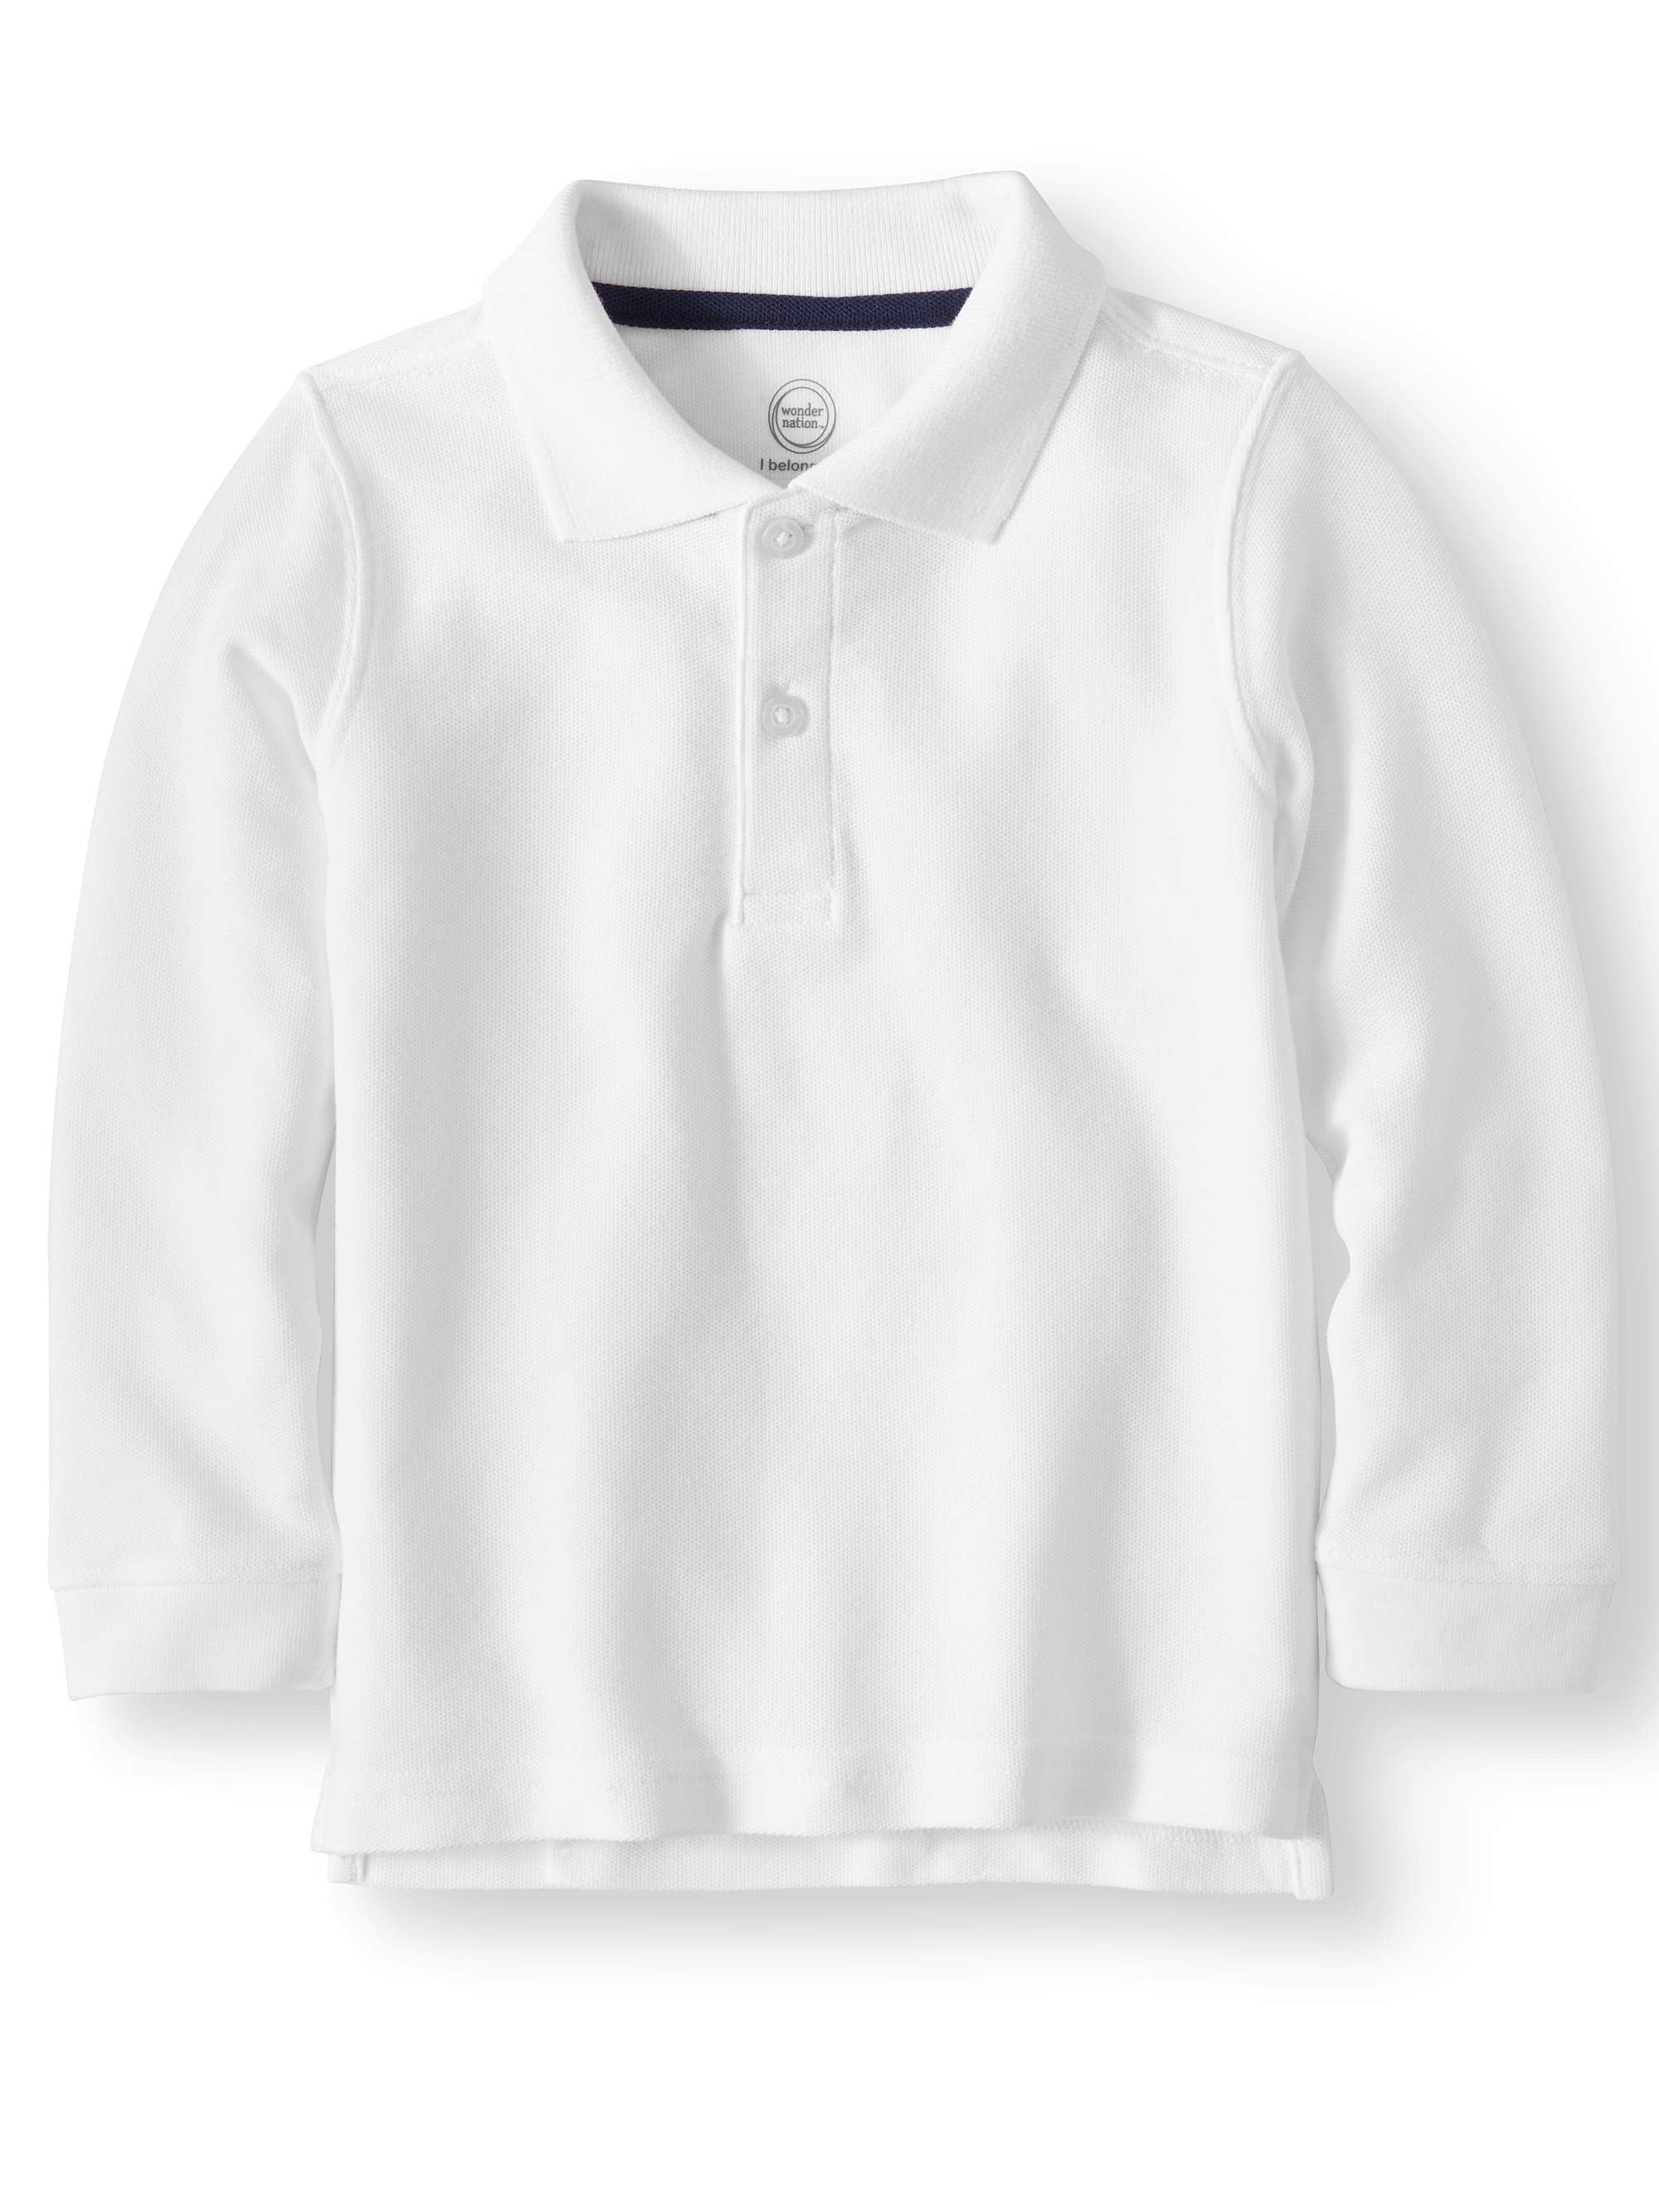 Toddler Boys School Uniform Long Sleeve Double Pique Polo